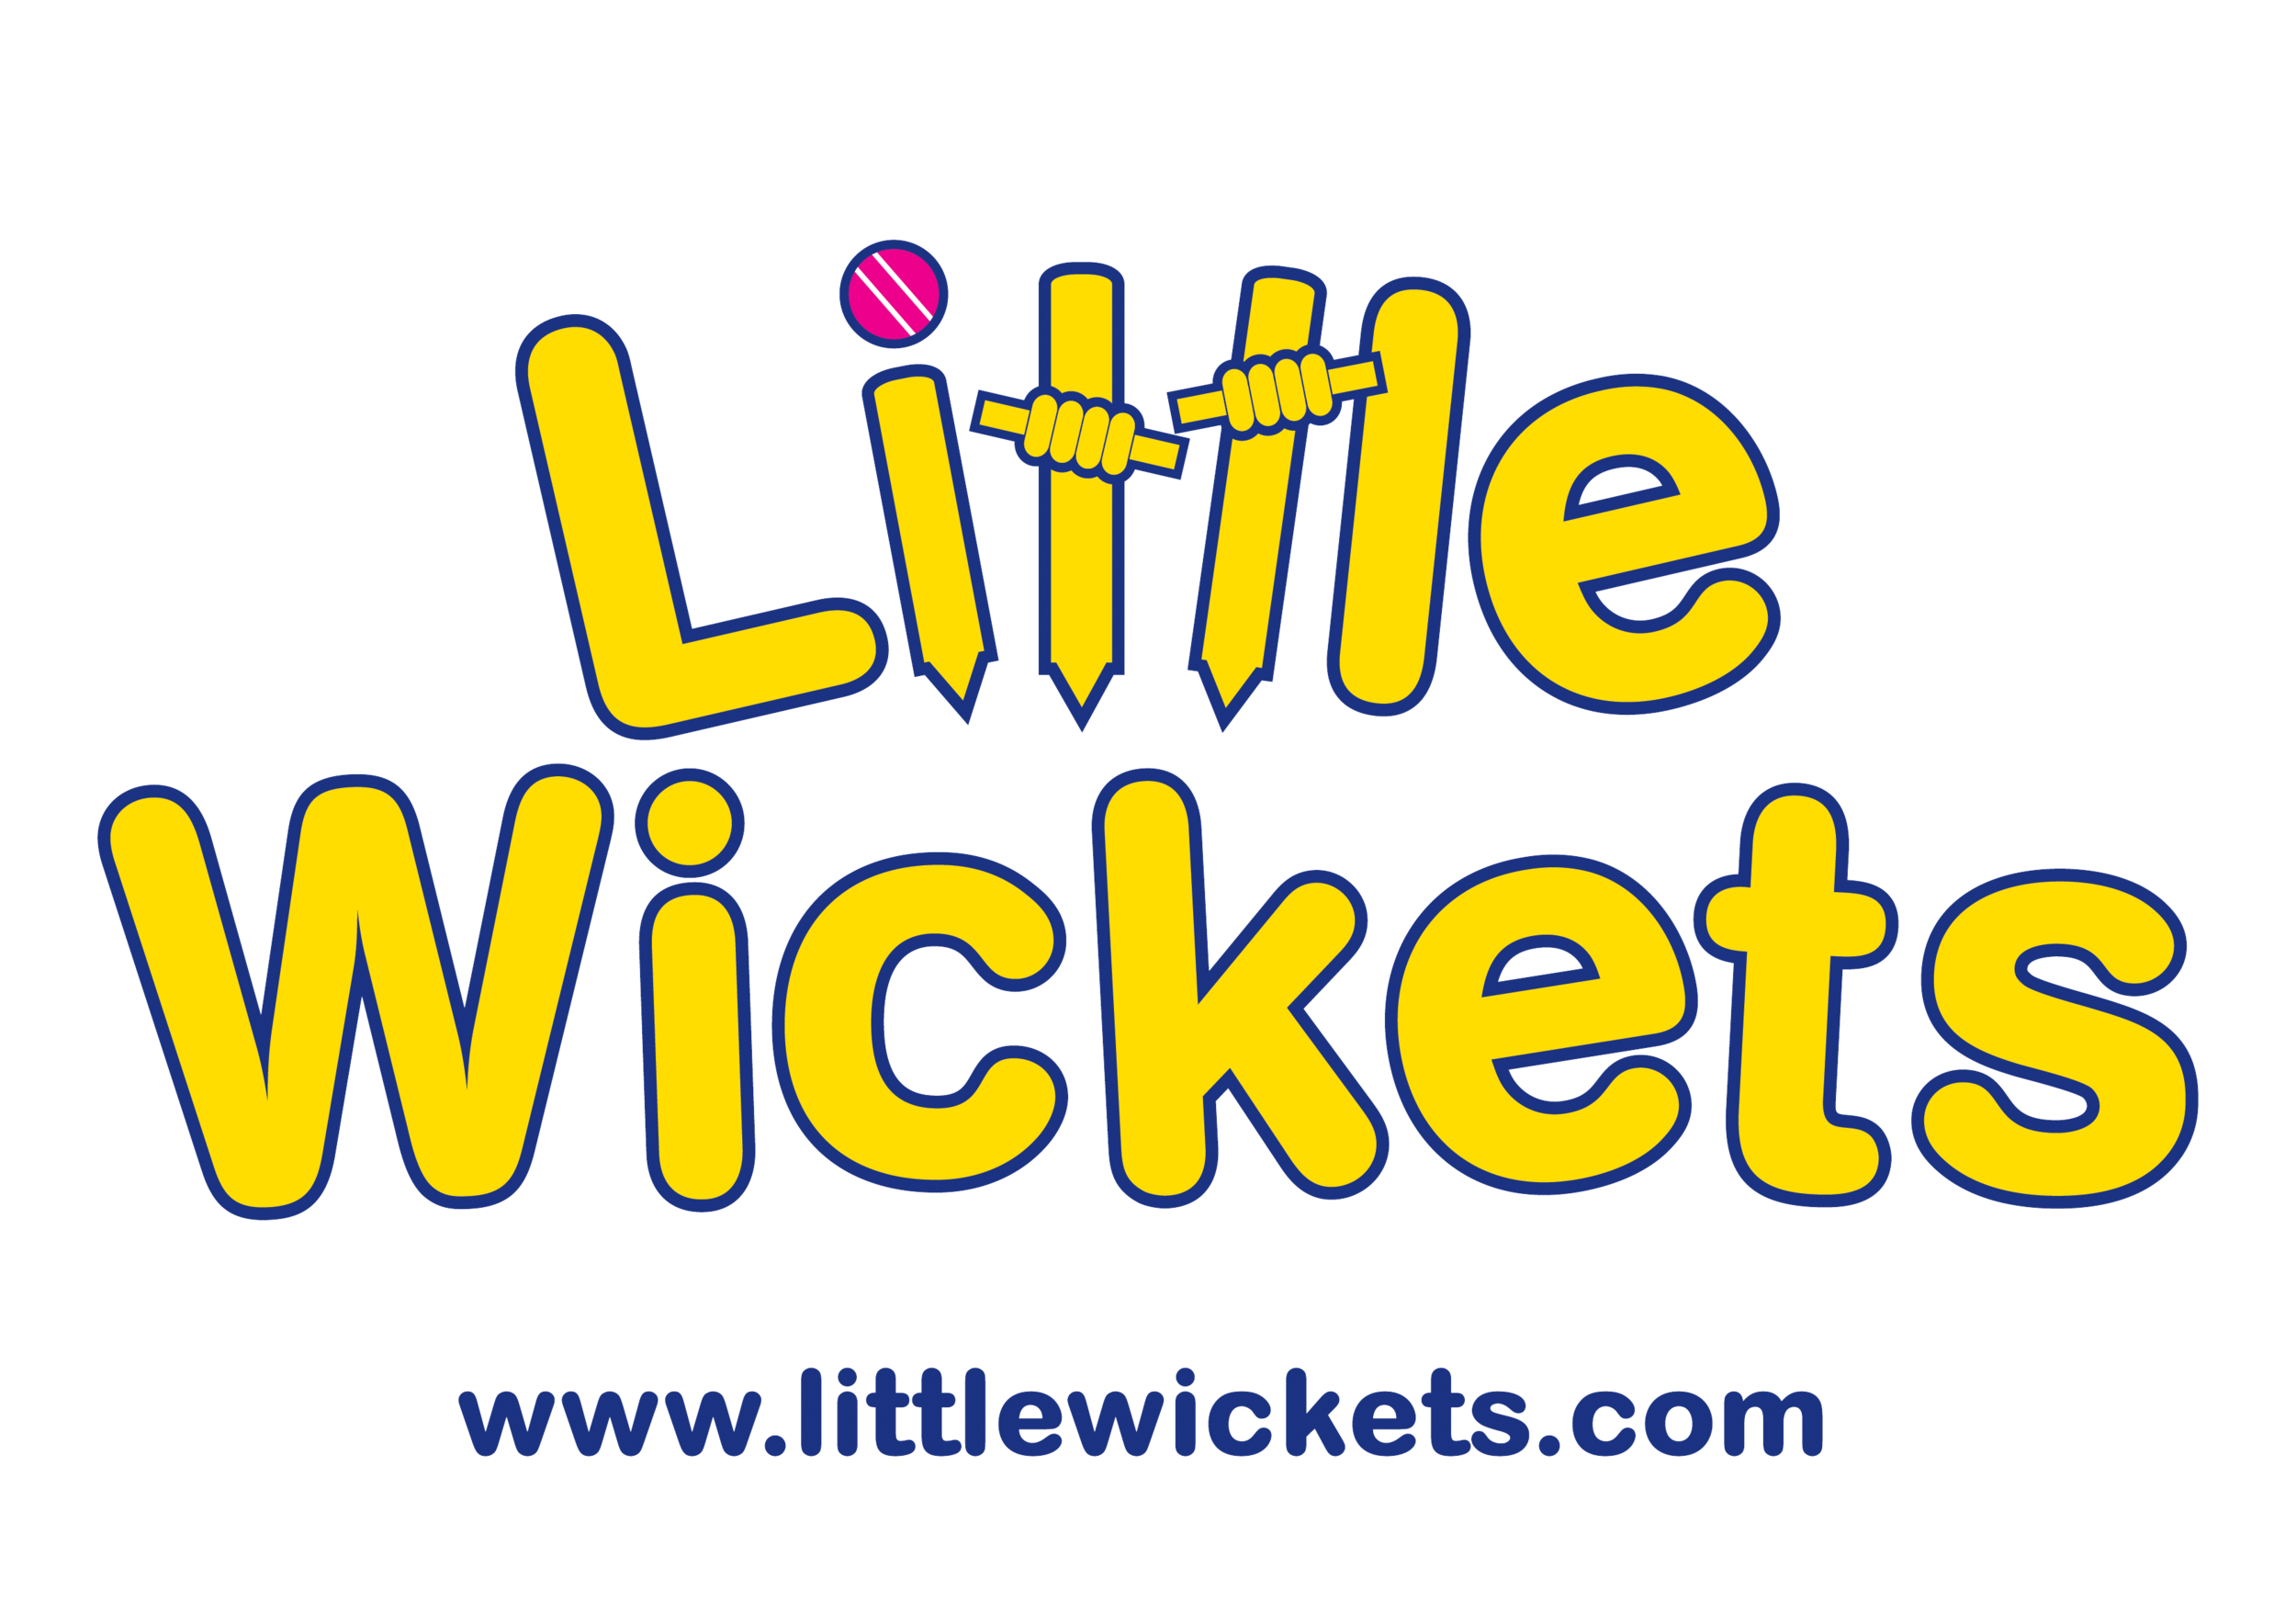 Little Wickets Logo.png